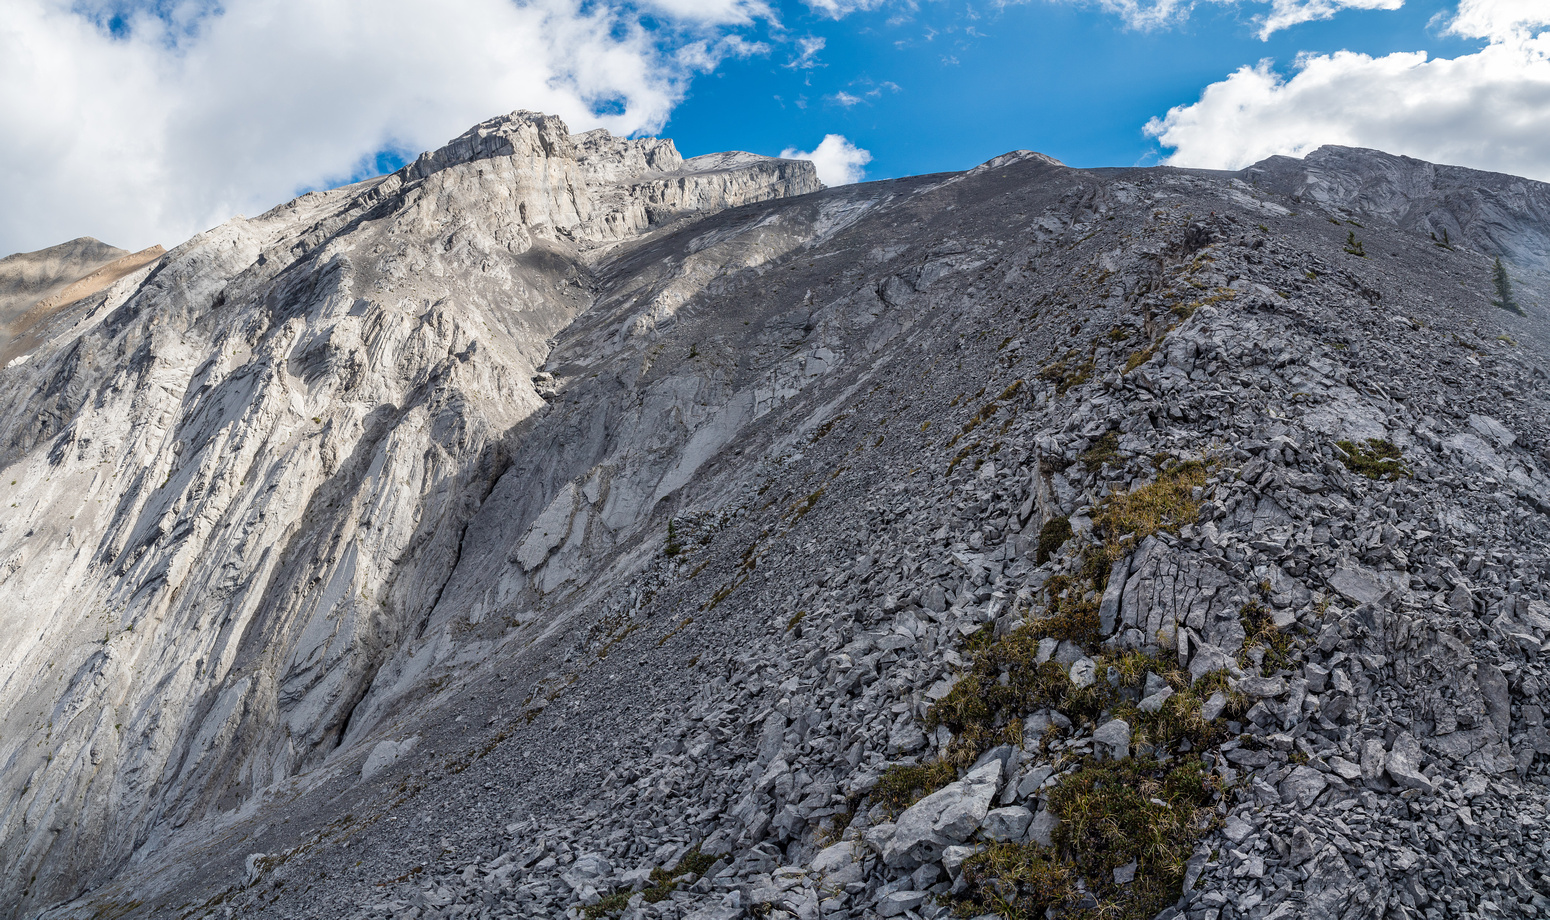 The route to the summit is now visible. Up the whaleback, then left through the cliffs and up to the summit